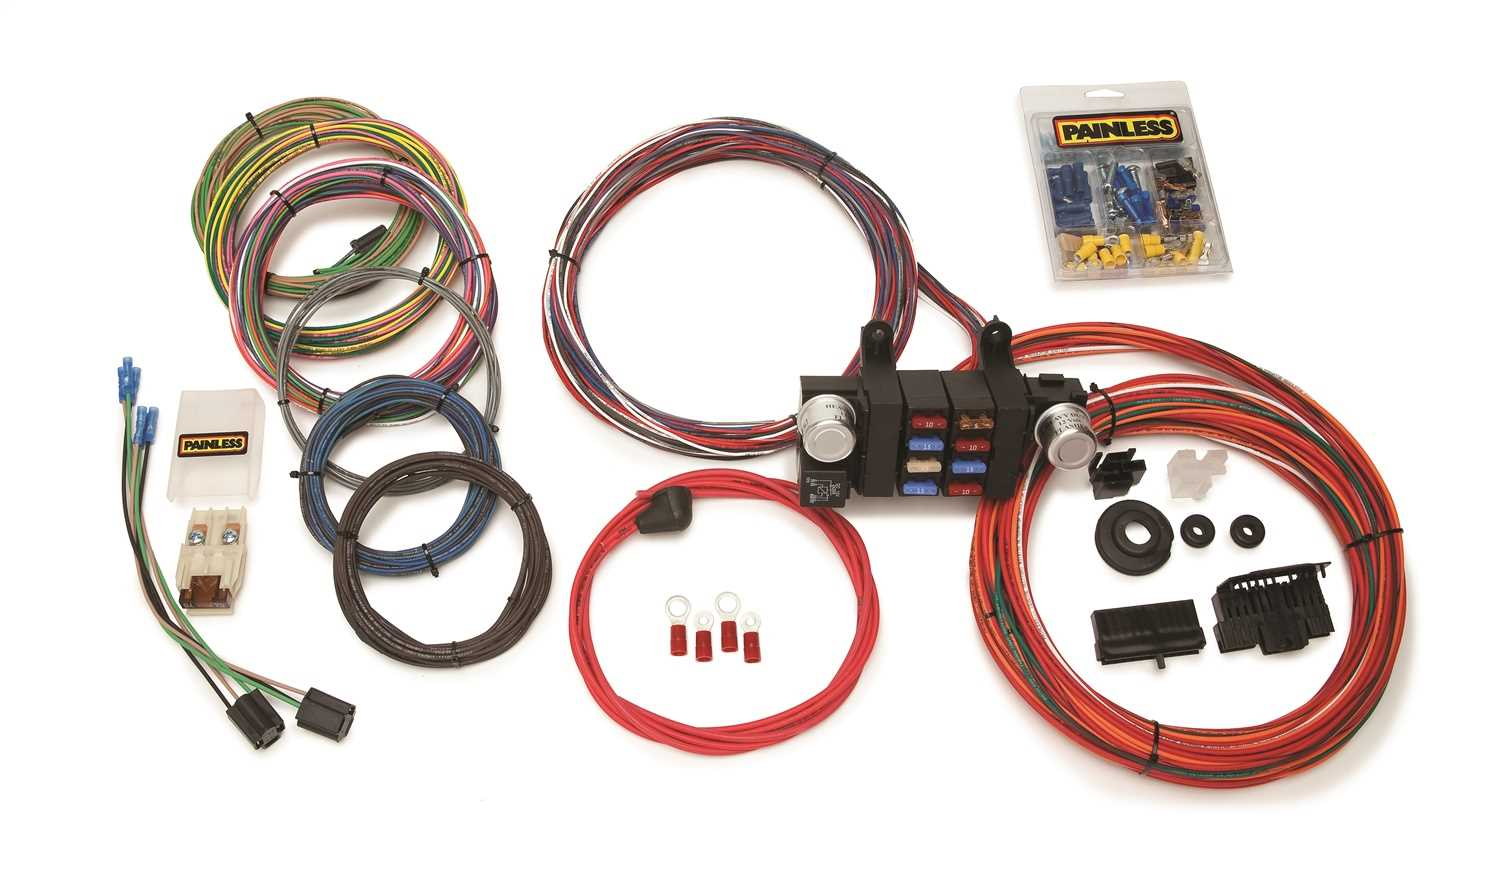 10308 Painless Wiring 18 Circuit Customizable Chis Harness 10308 on rover series 3 diesel harness, fuel injector harness, bully dog harness, horse team harness, 5.3 vortec swap harness, car harness, racing seat harness, radio harness, painless fuse box, painless engine harness, dodge ram injector harness, electrical harness, indestructible dog harness, ford 5.0 fuel injection harness, front lead dog harness, chevy tbi harness, duraspark harness, 5 point harness, horse driving harness, 1972 chevy truck harness,